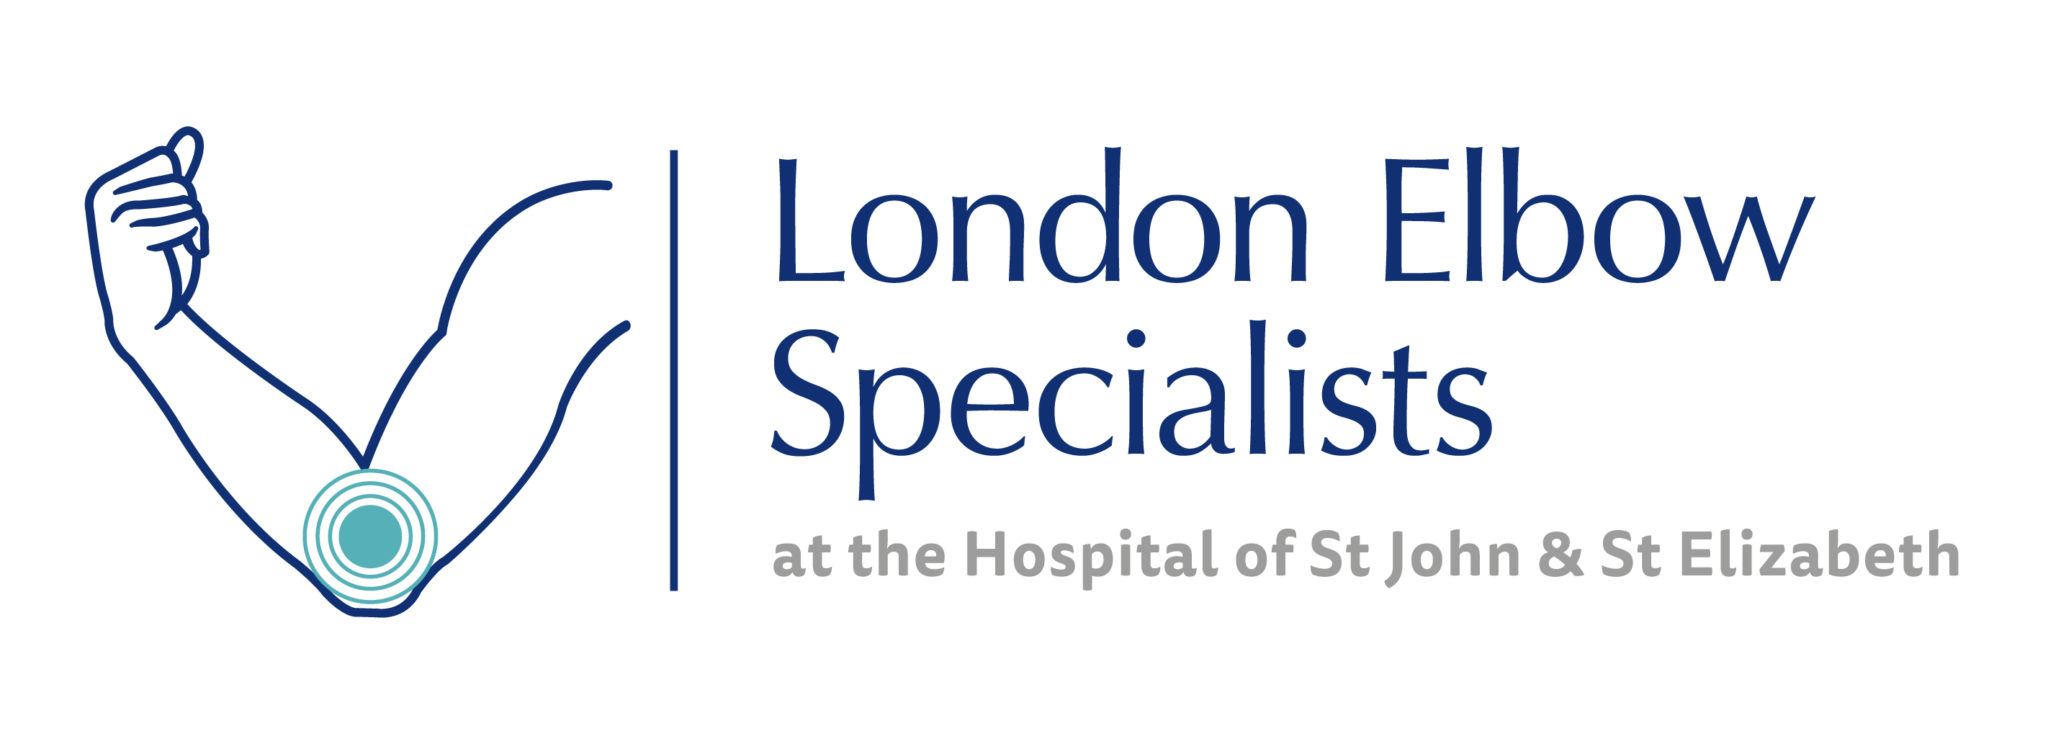 London Elbow Specialists